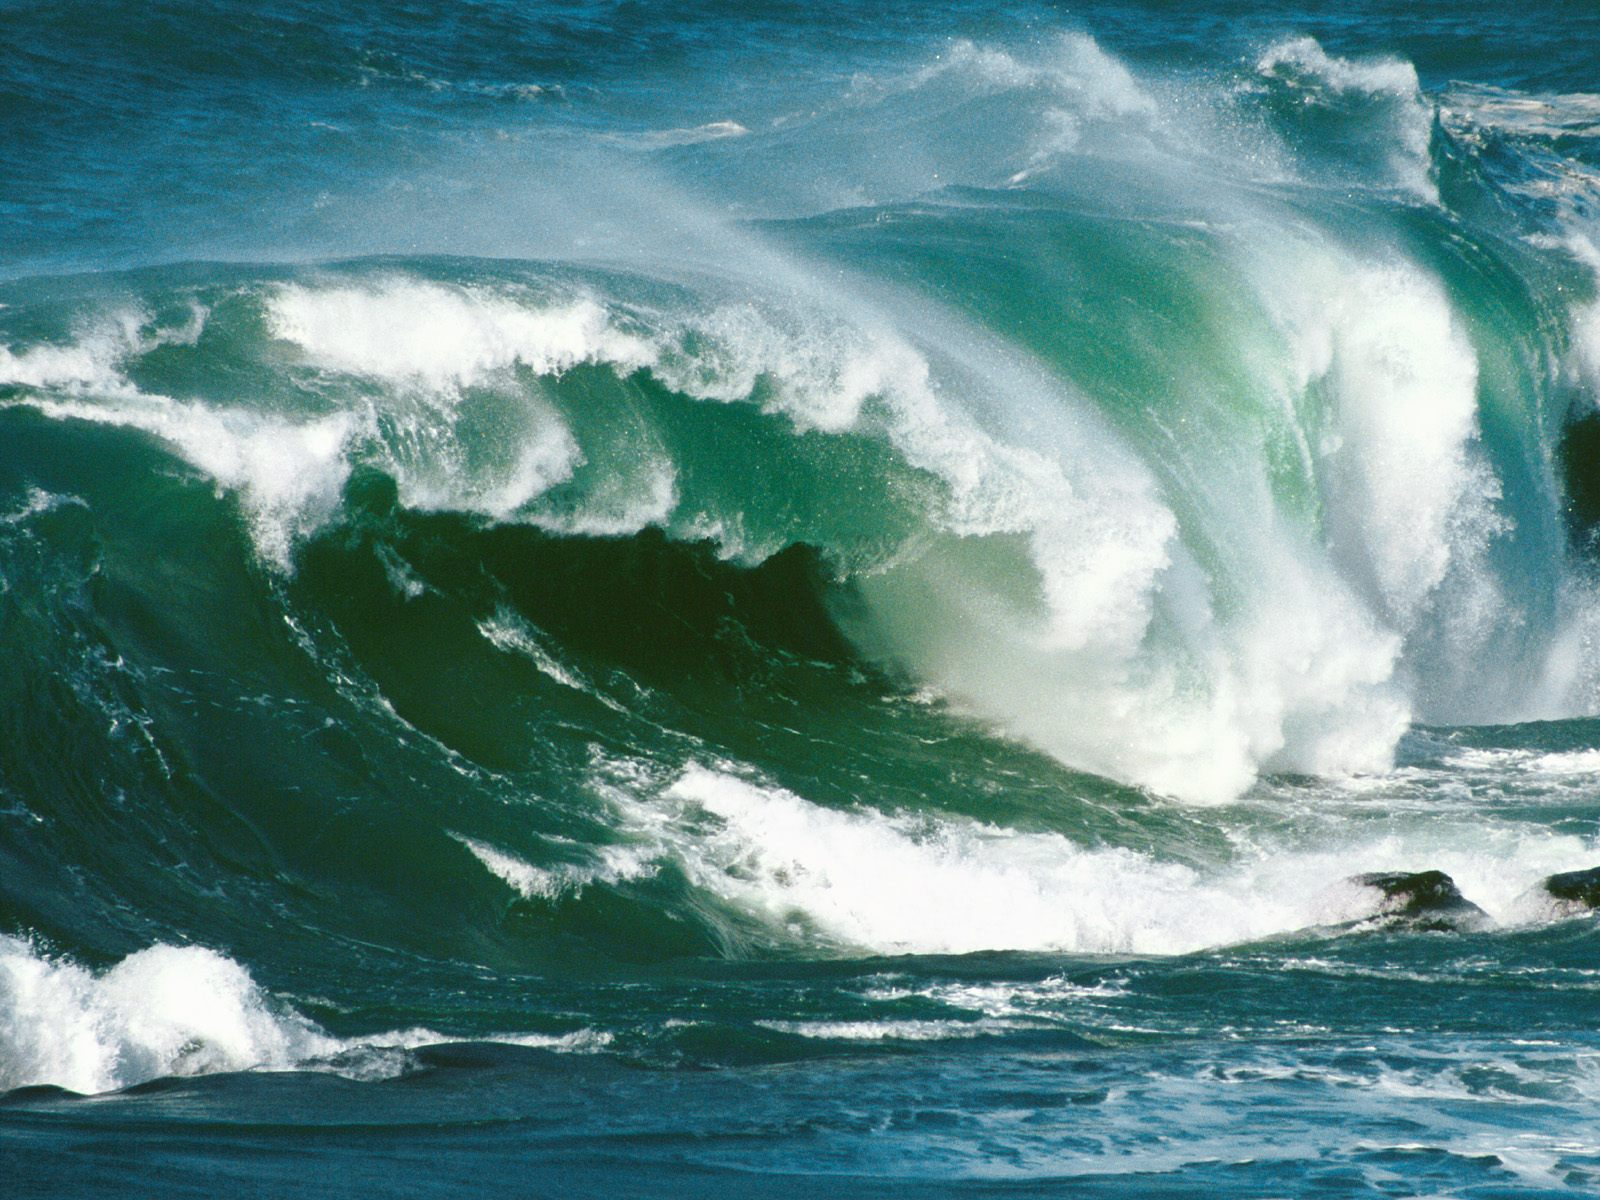 picturespool beautiful ocean waves amazing sea waves